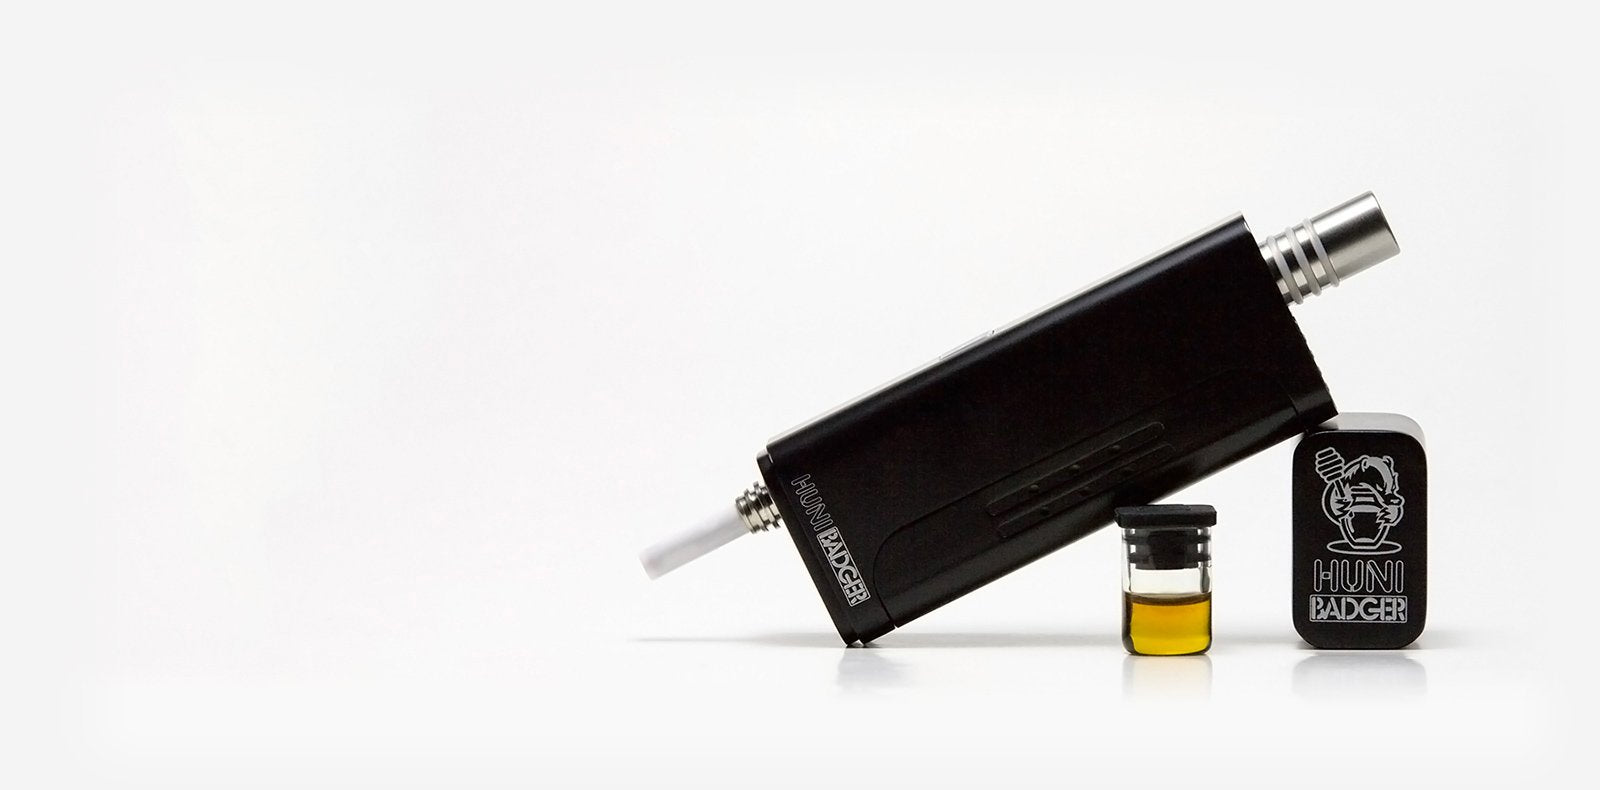 Huni Badger Vertical Concentrate Vaporizer